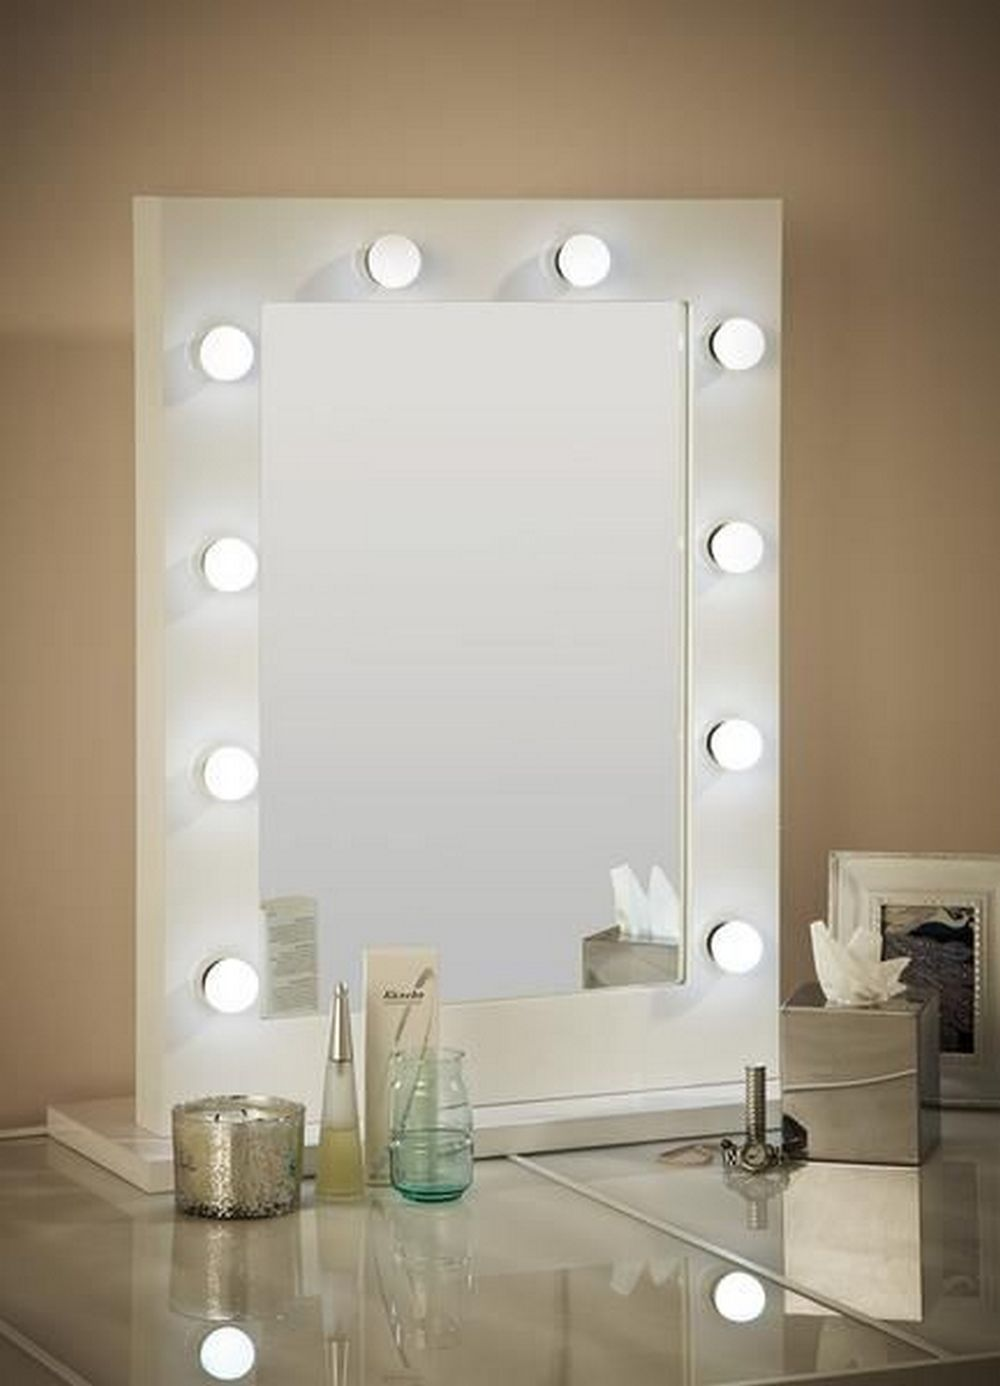 Diy Hollywood Lighted Vanity Mirror Diy Projects For